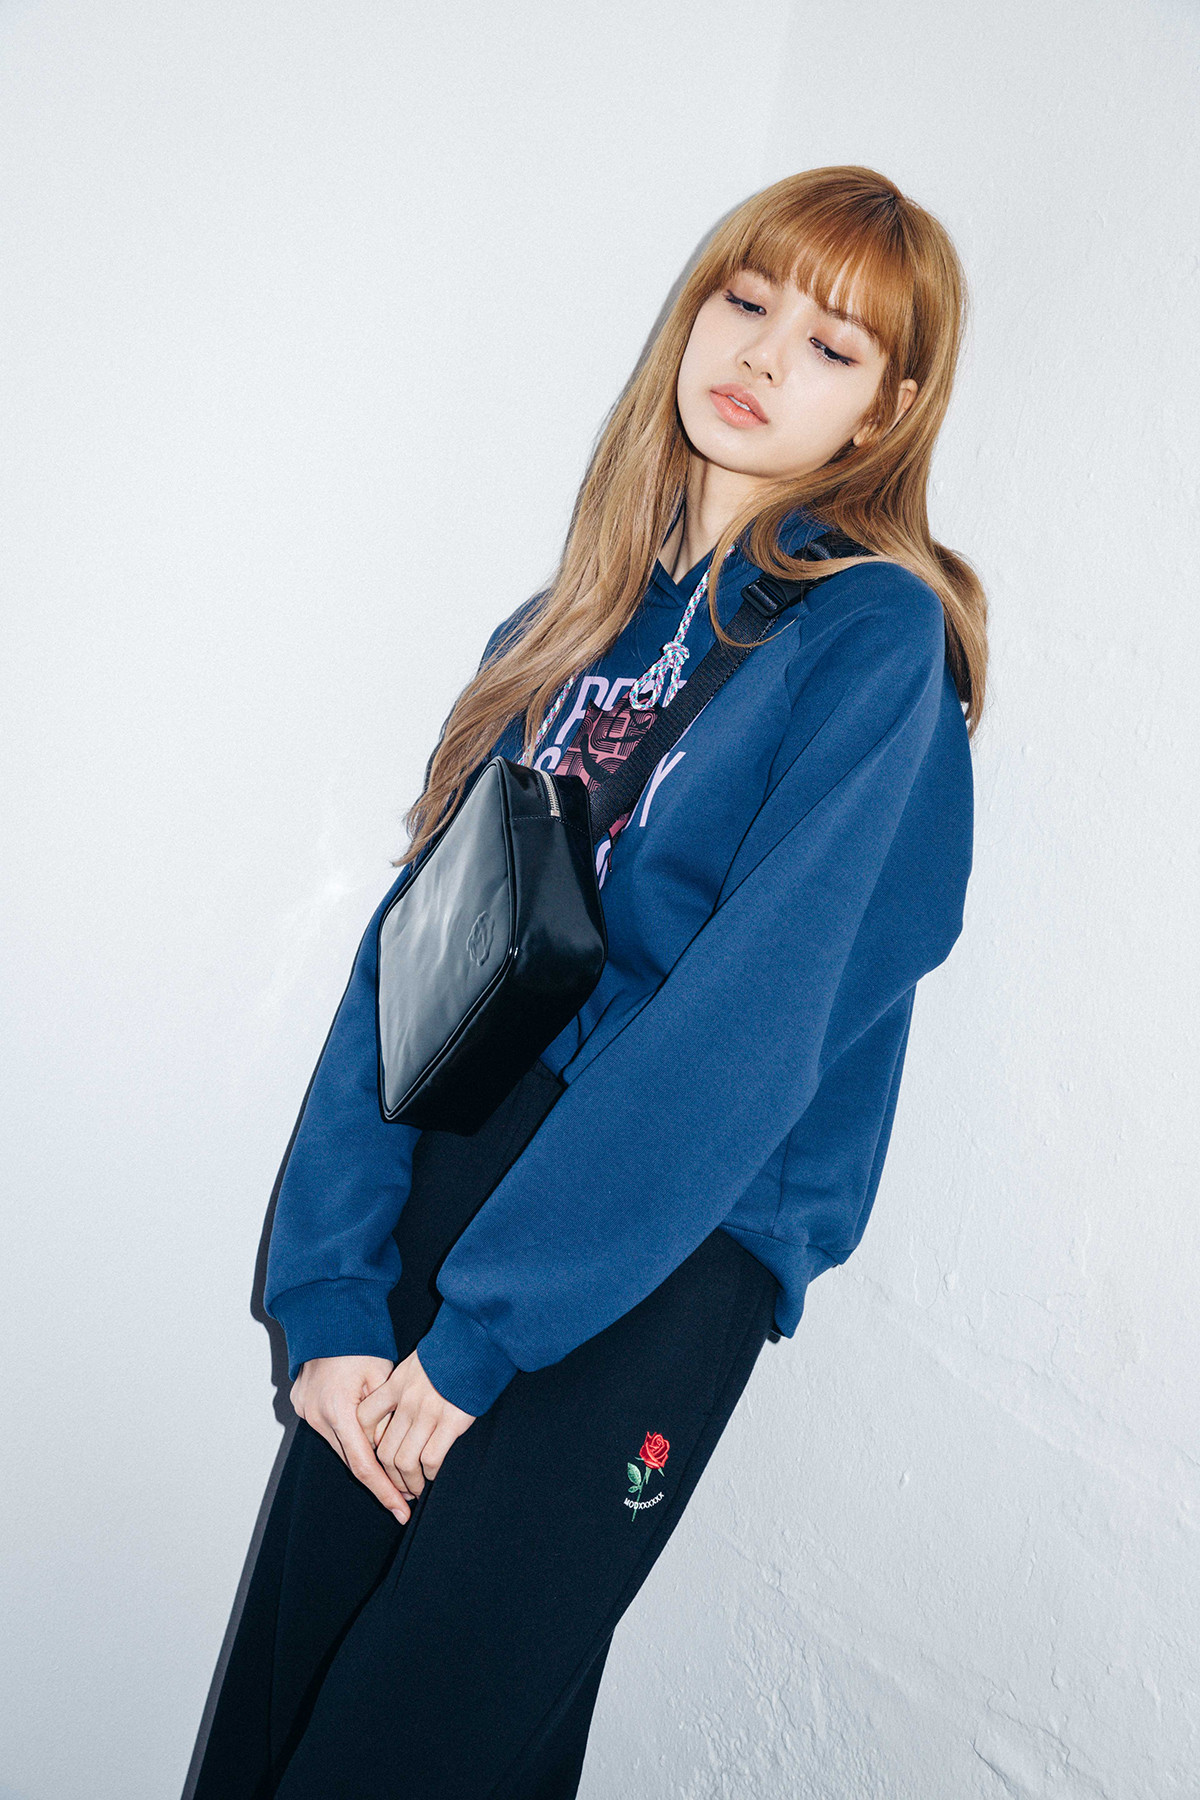 X Girl Nonagon Lisa Blackpink Campaign Collaboration 43 Ygdreamers